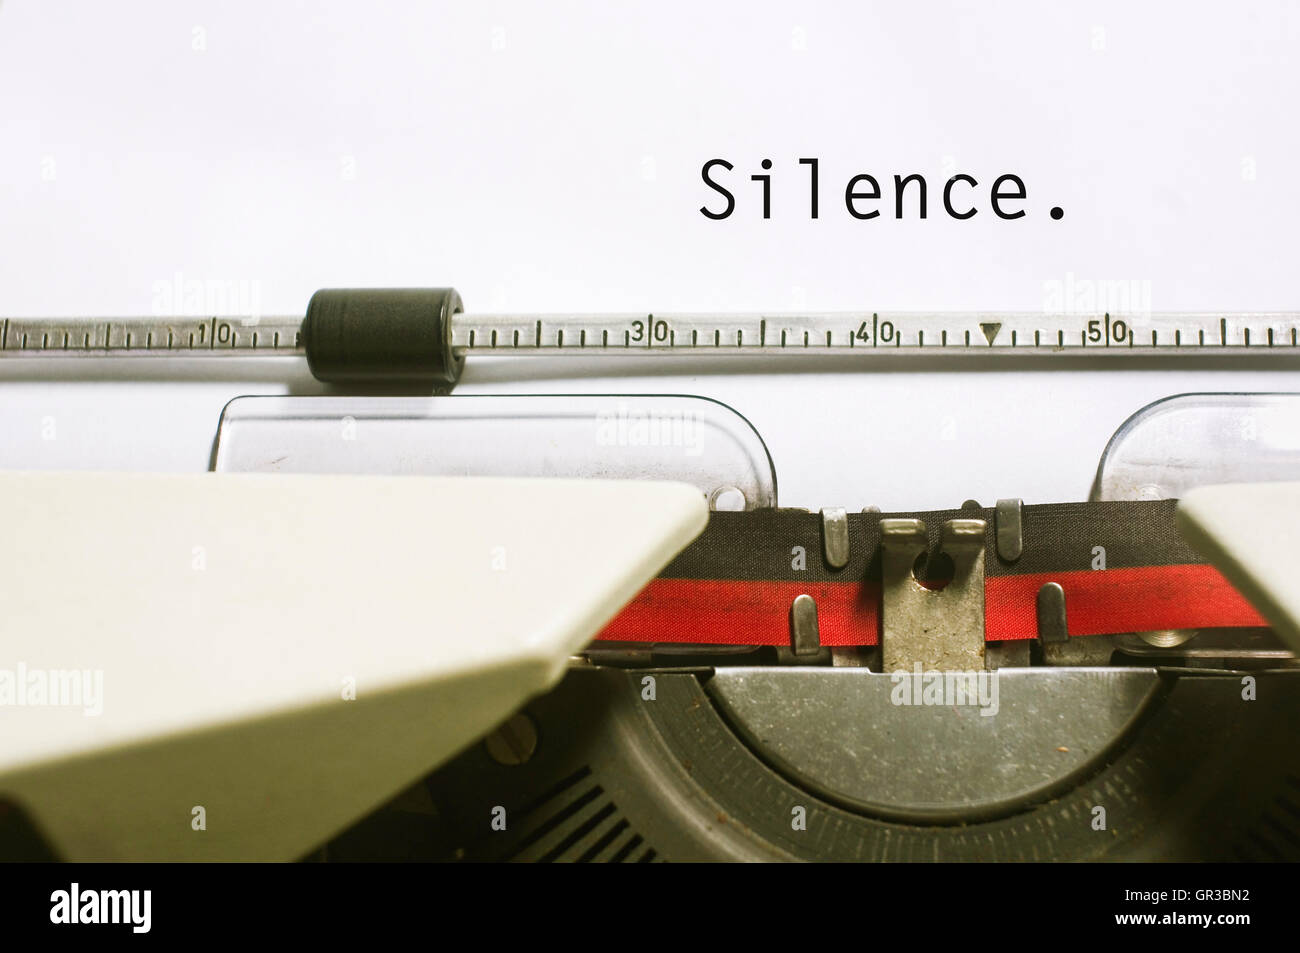 silence concepts - Stock Image